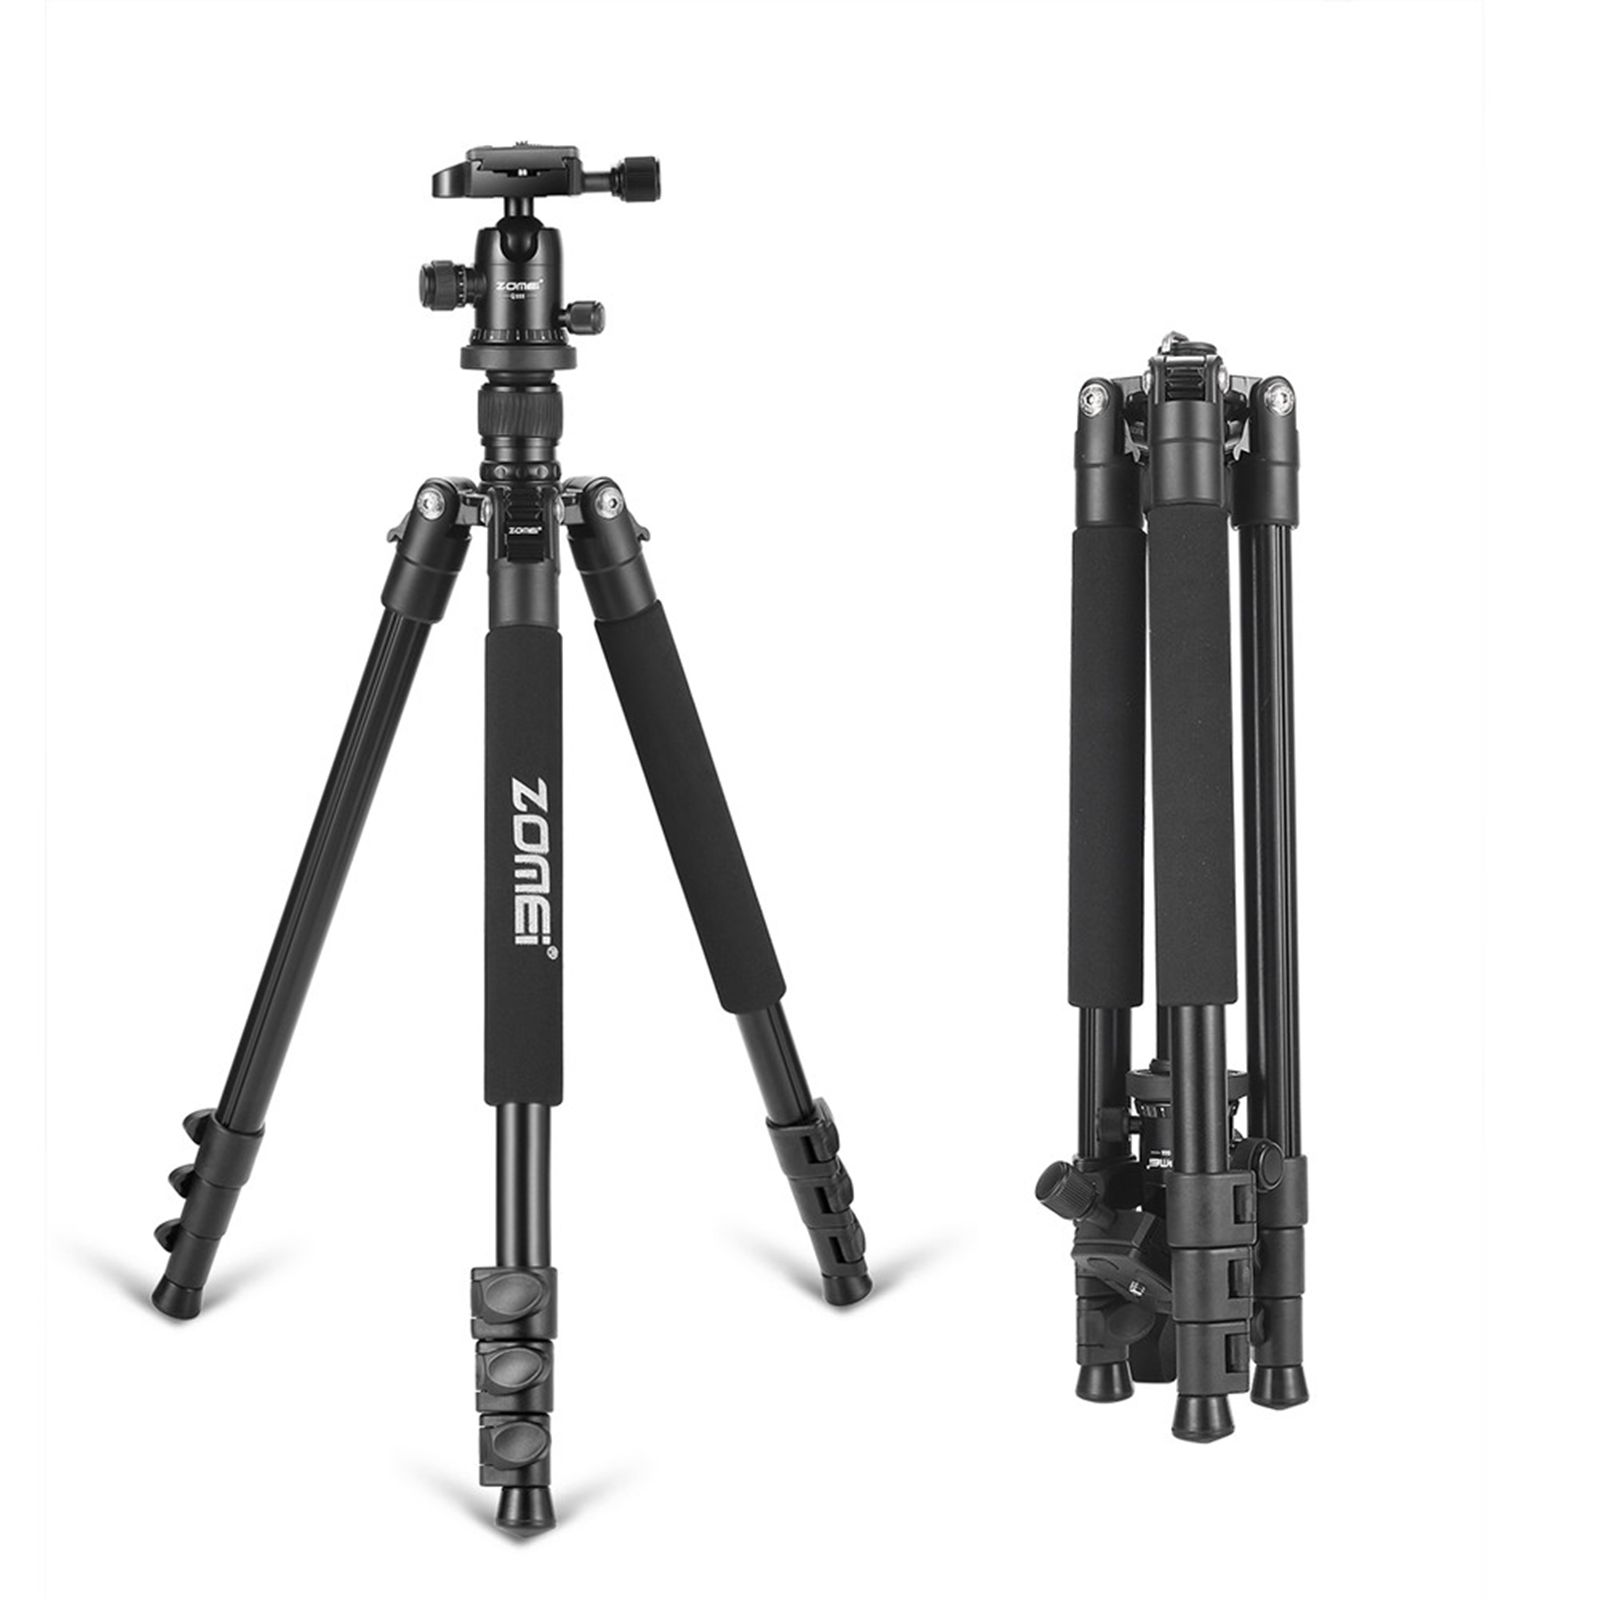 Q555 Pro Portable Aluminum Digital Camera Tripod Monopod With Ball Head + 1/4 Quick Release Plate For SLR digital cameras zomei z888 portable stable magnesium alloy digital camera tripod monopod ball head for digital slr dslr camera